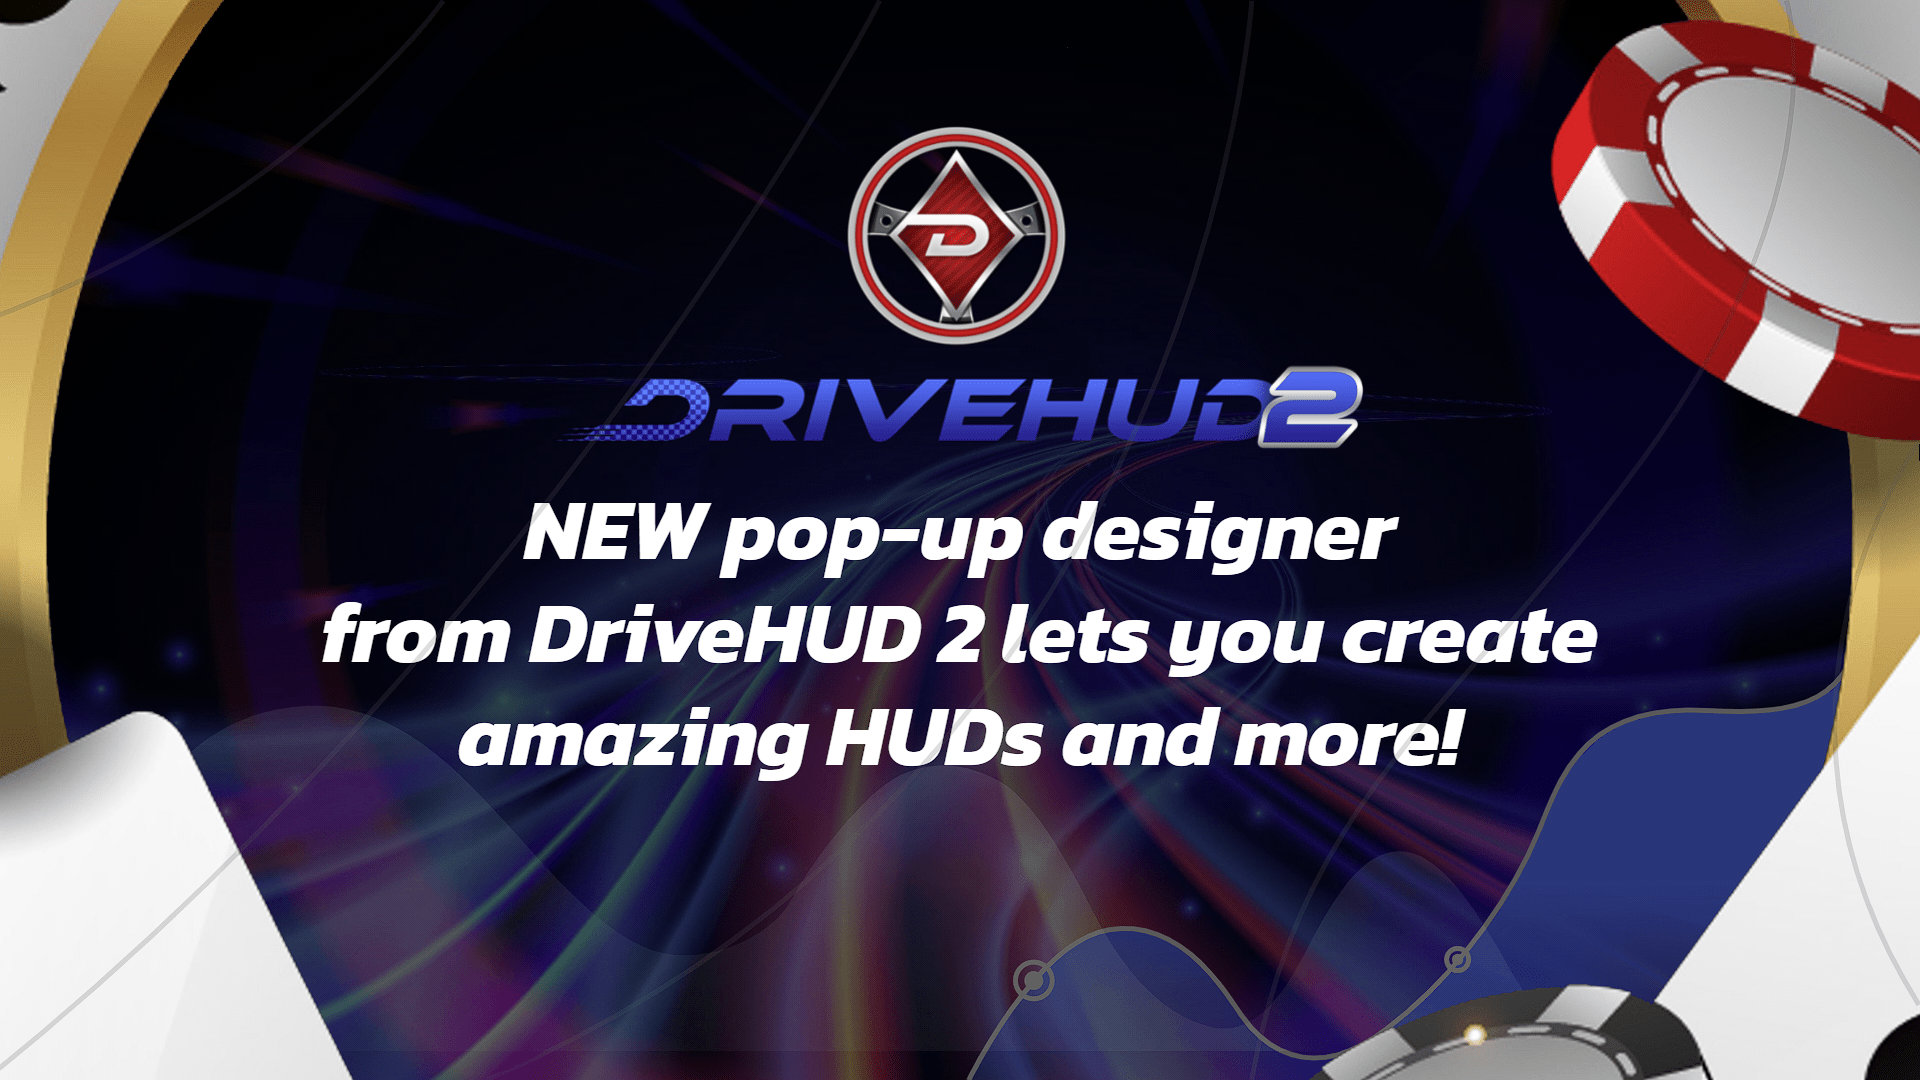 NEW pop-up designer from DriveHUD 2 lets you create amazing HUDs and more!